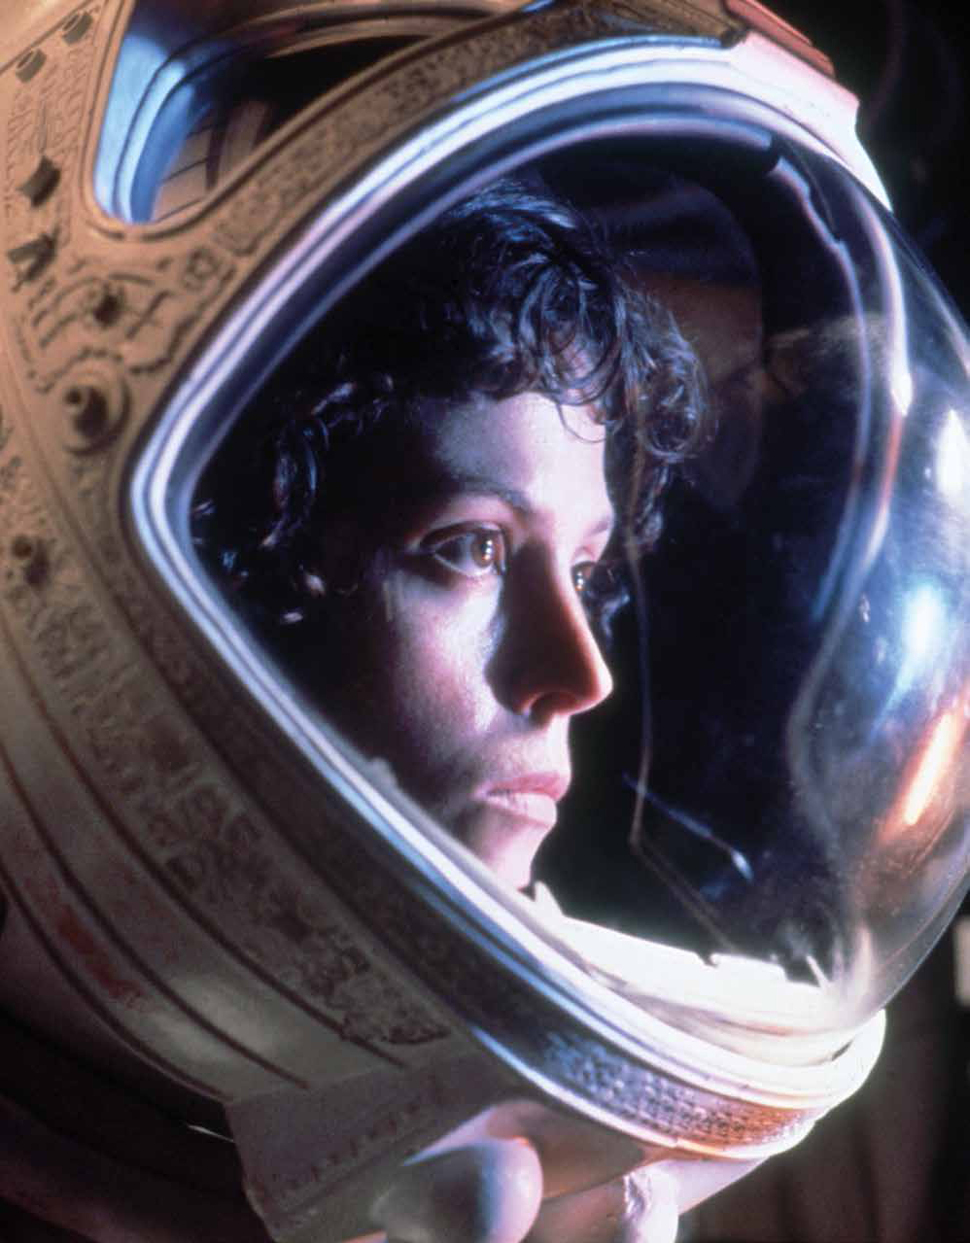 When she was cast as Flight Lt. Ellen Ripley, the lone survivor of the Nostromo,Sigourney Weaver was a virtually unknown actress with aspirations to become known for her stage work rather than become a movie star. The role would not only propel her to A-list actor status but also establish her as the prototypical kick-ass action heroine of 20th century cinema.